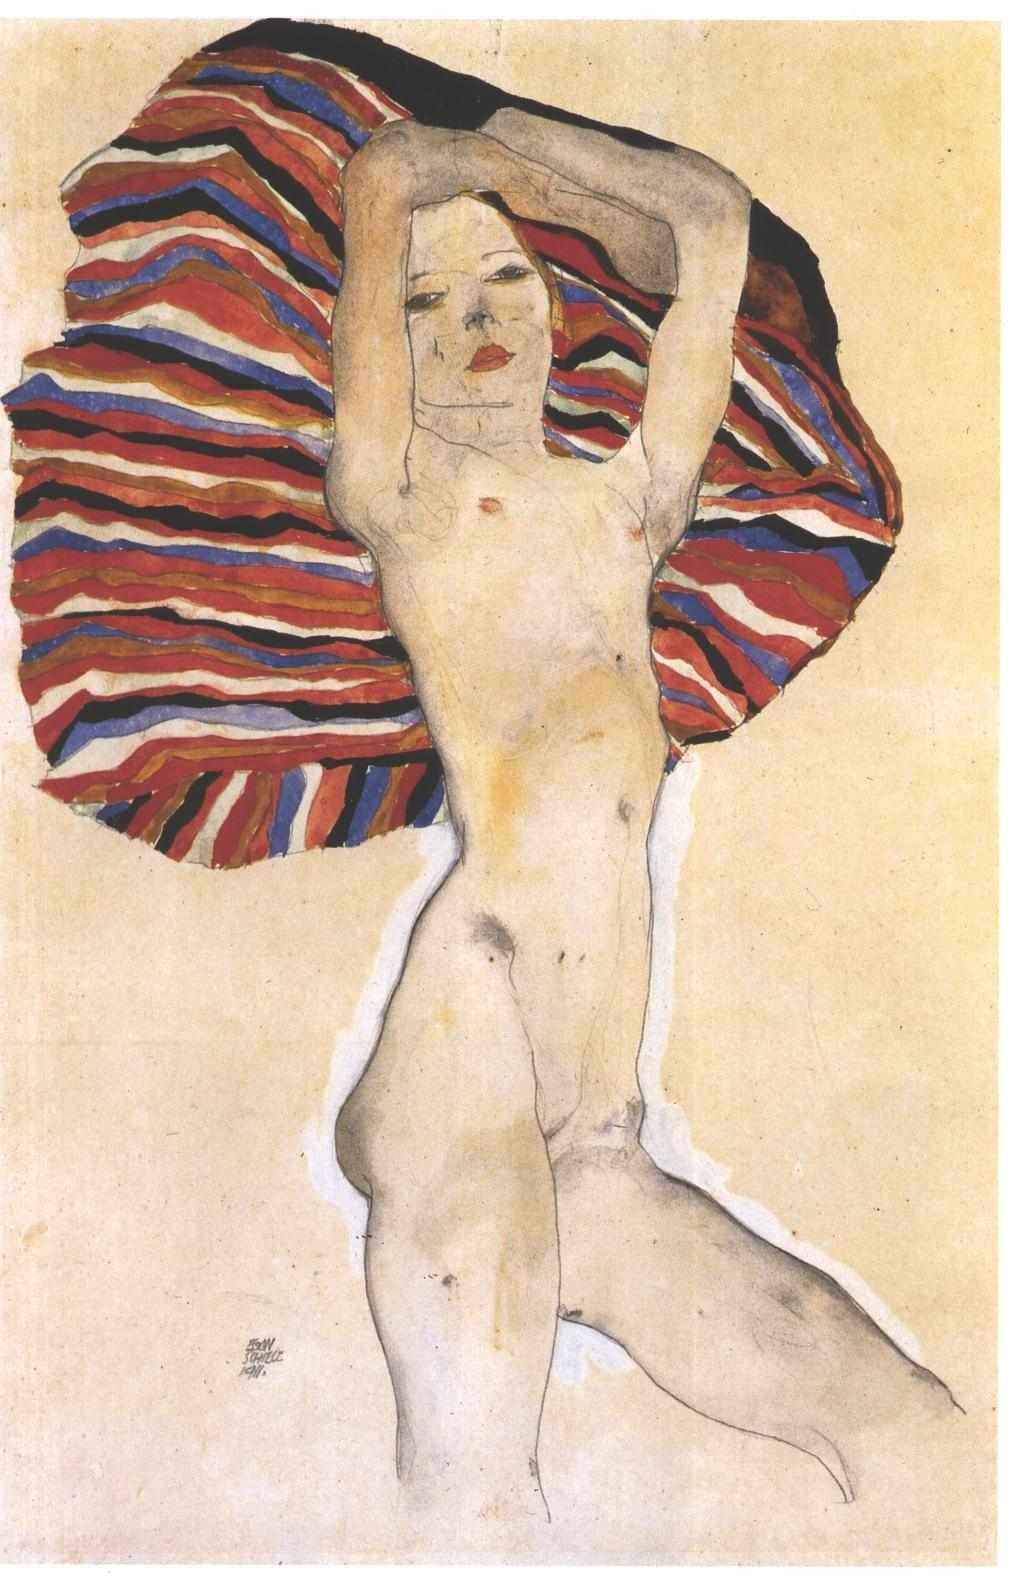 Egon Schiele. Nude against the background of colorful fabric